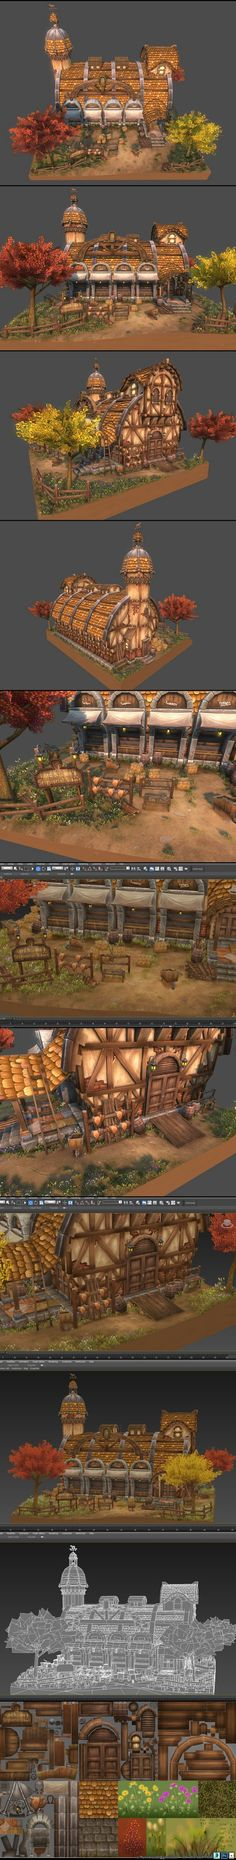 3D environment model  Be the reason our environment improves for decades to come at http://www.fuzeus.com